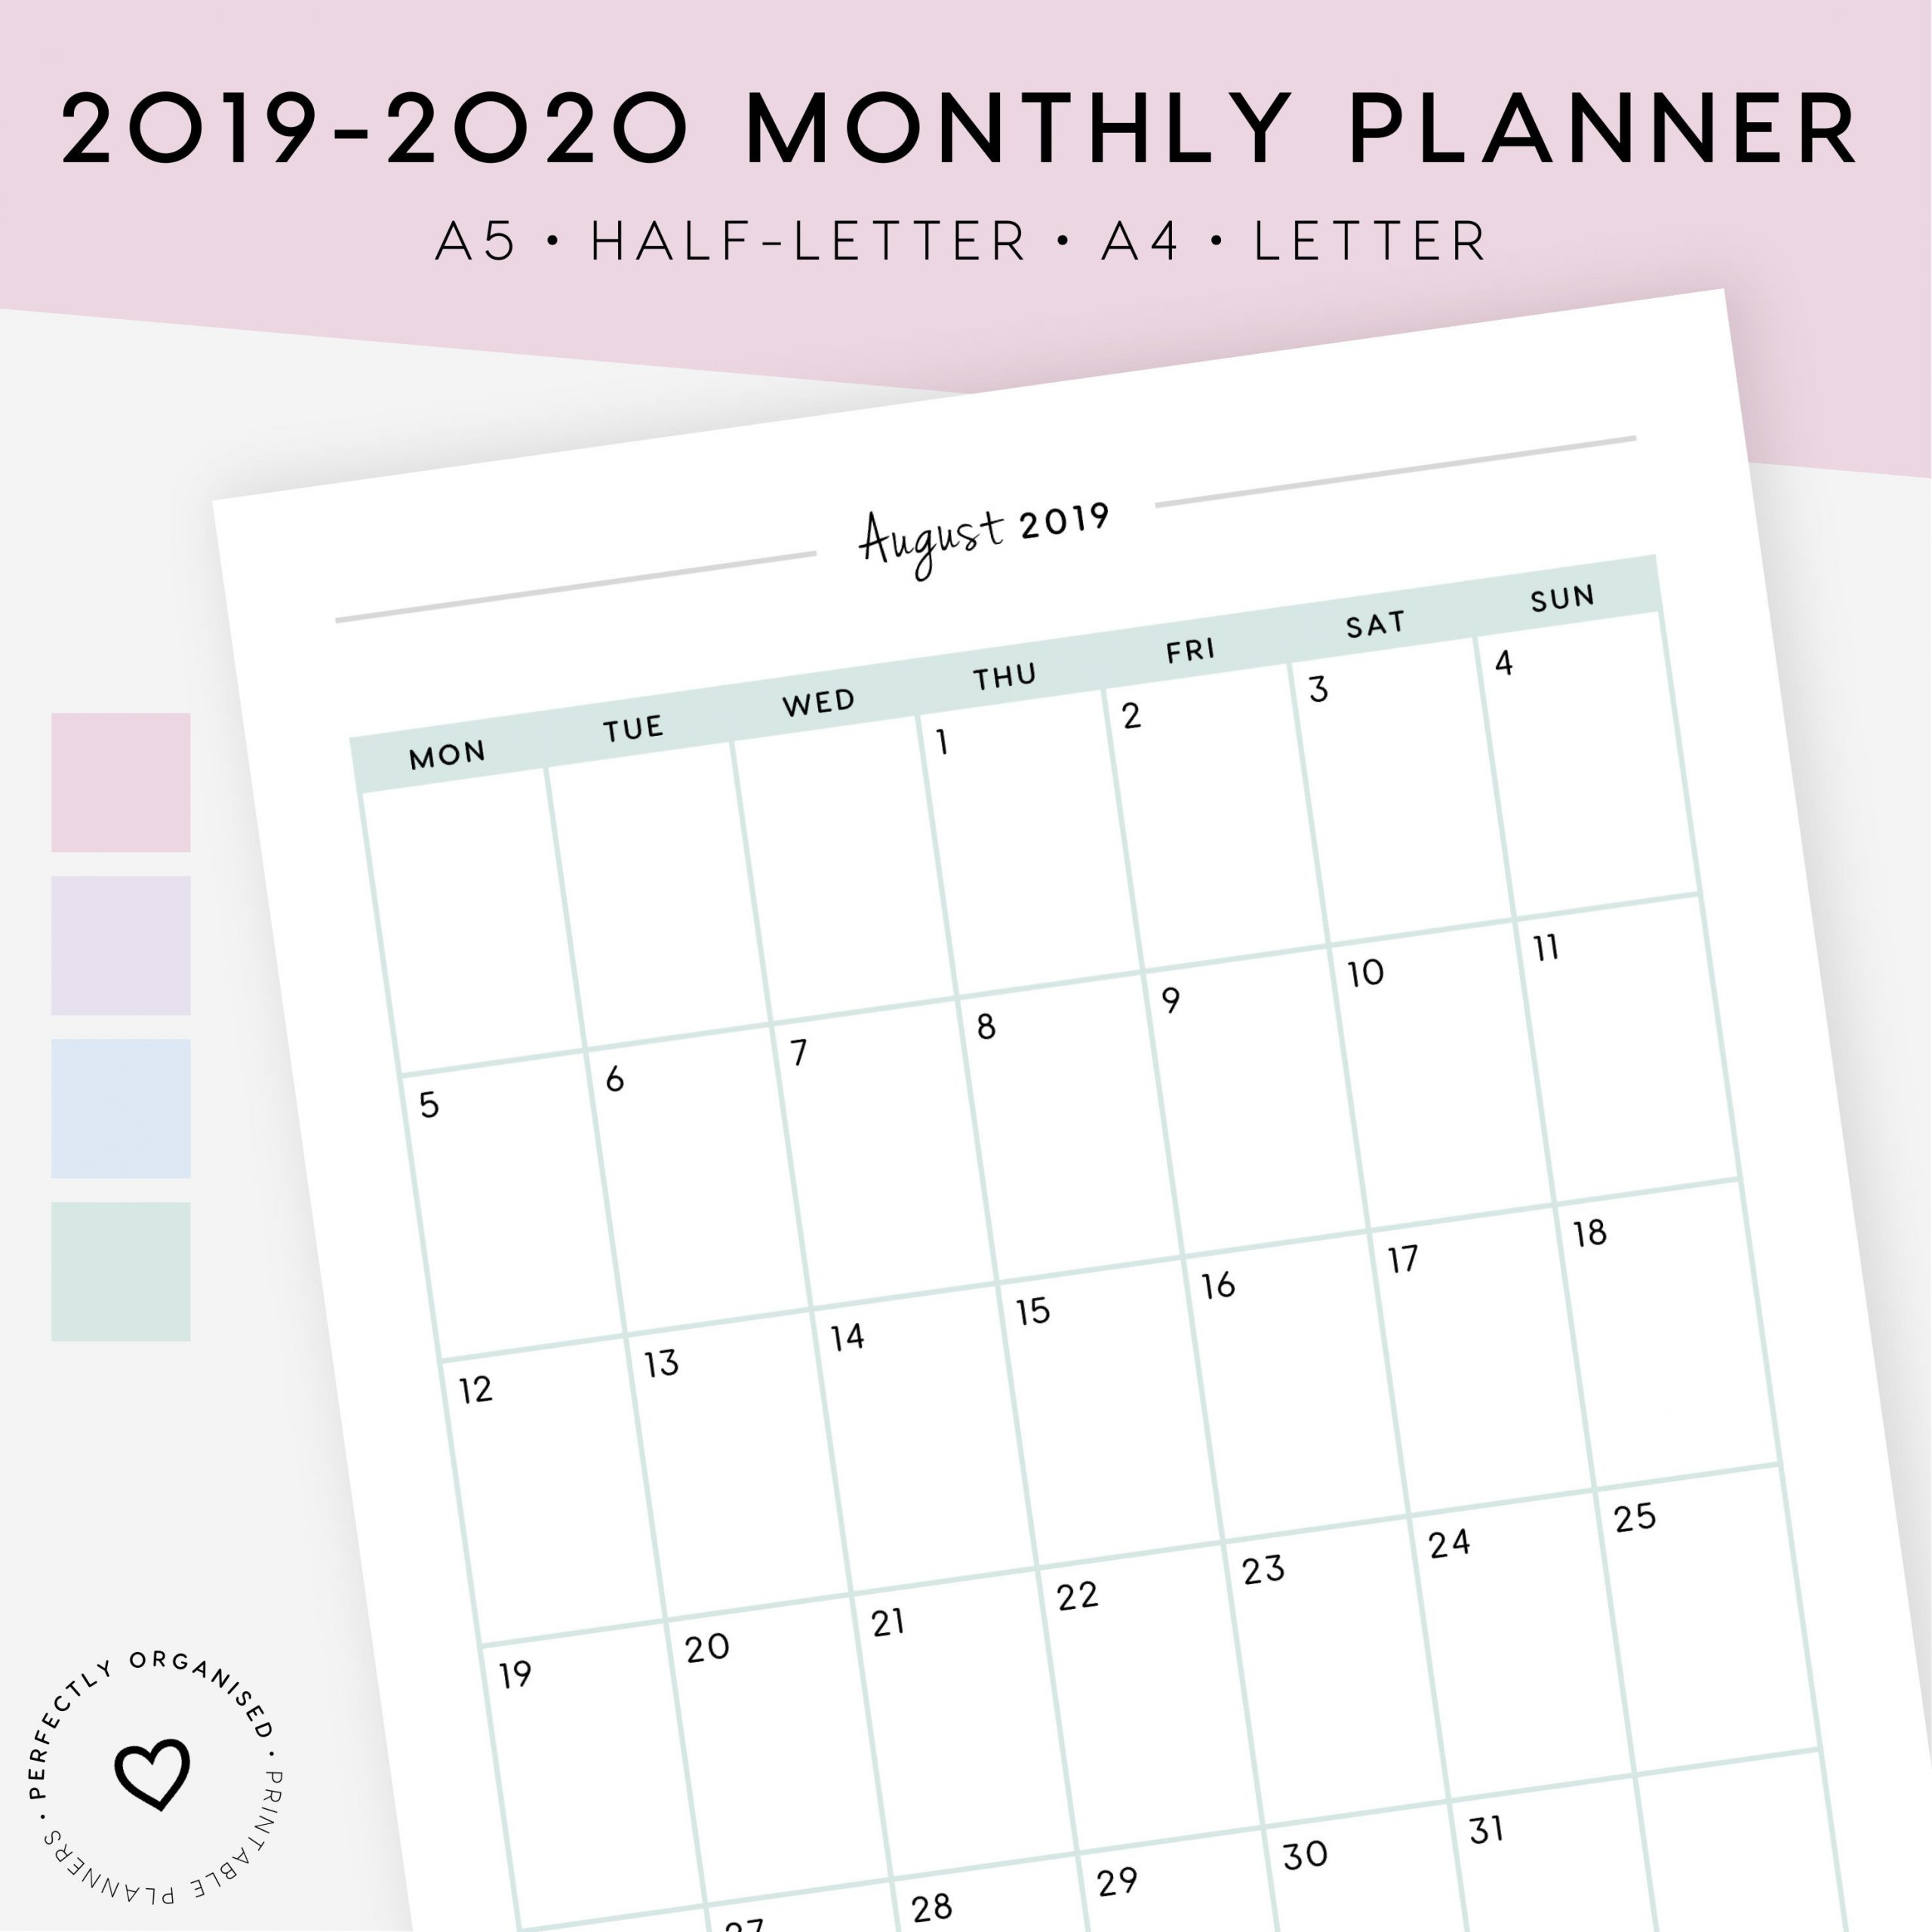 2019-2020 Monthly Planner Printable | 2019-2020 Month On 1 Page, Monthly  Inserts, Monthly Calendar, A5, Half-Letter, A4, Letter